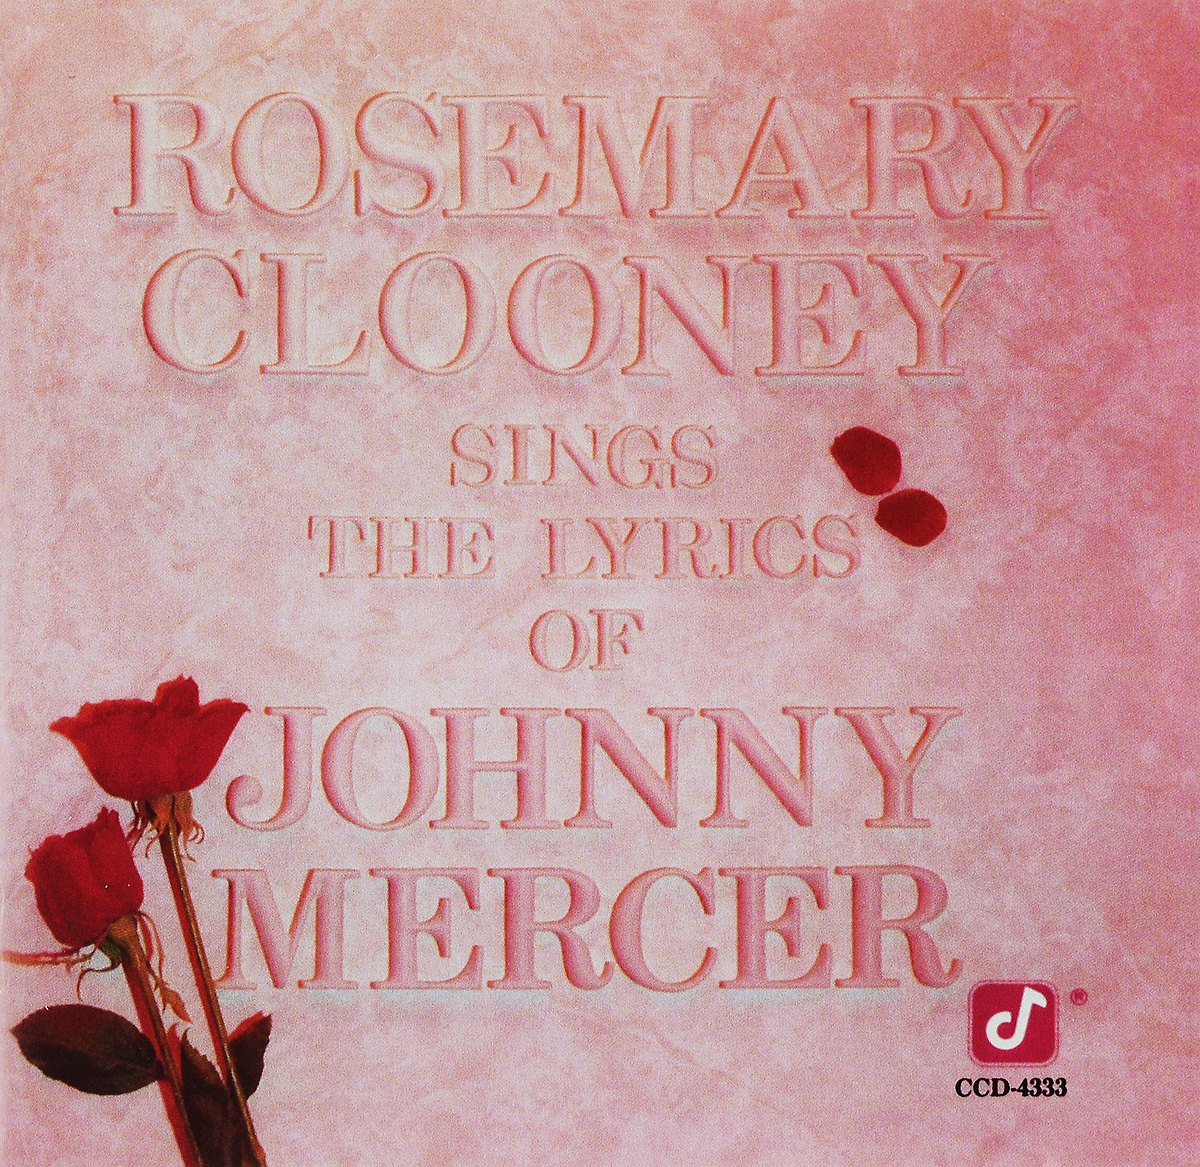 Джонни Мерсер Johnny Mercer. Rosemary Clooney.Sings The Lyrics Of Johnny Mercer fotorama тир проекционный 3d джонни черепок с 2 мя бластерами johnny the skull